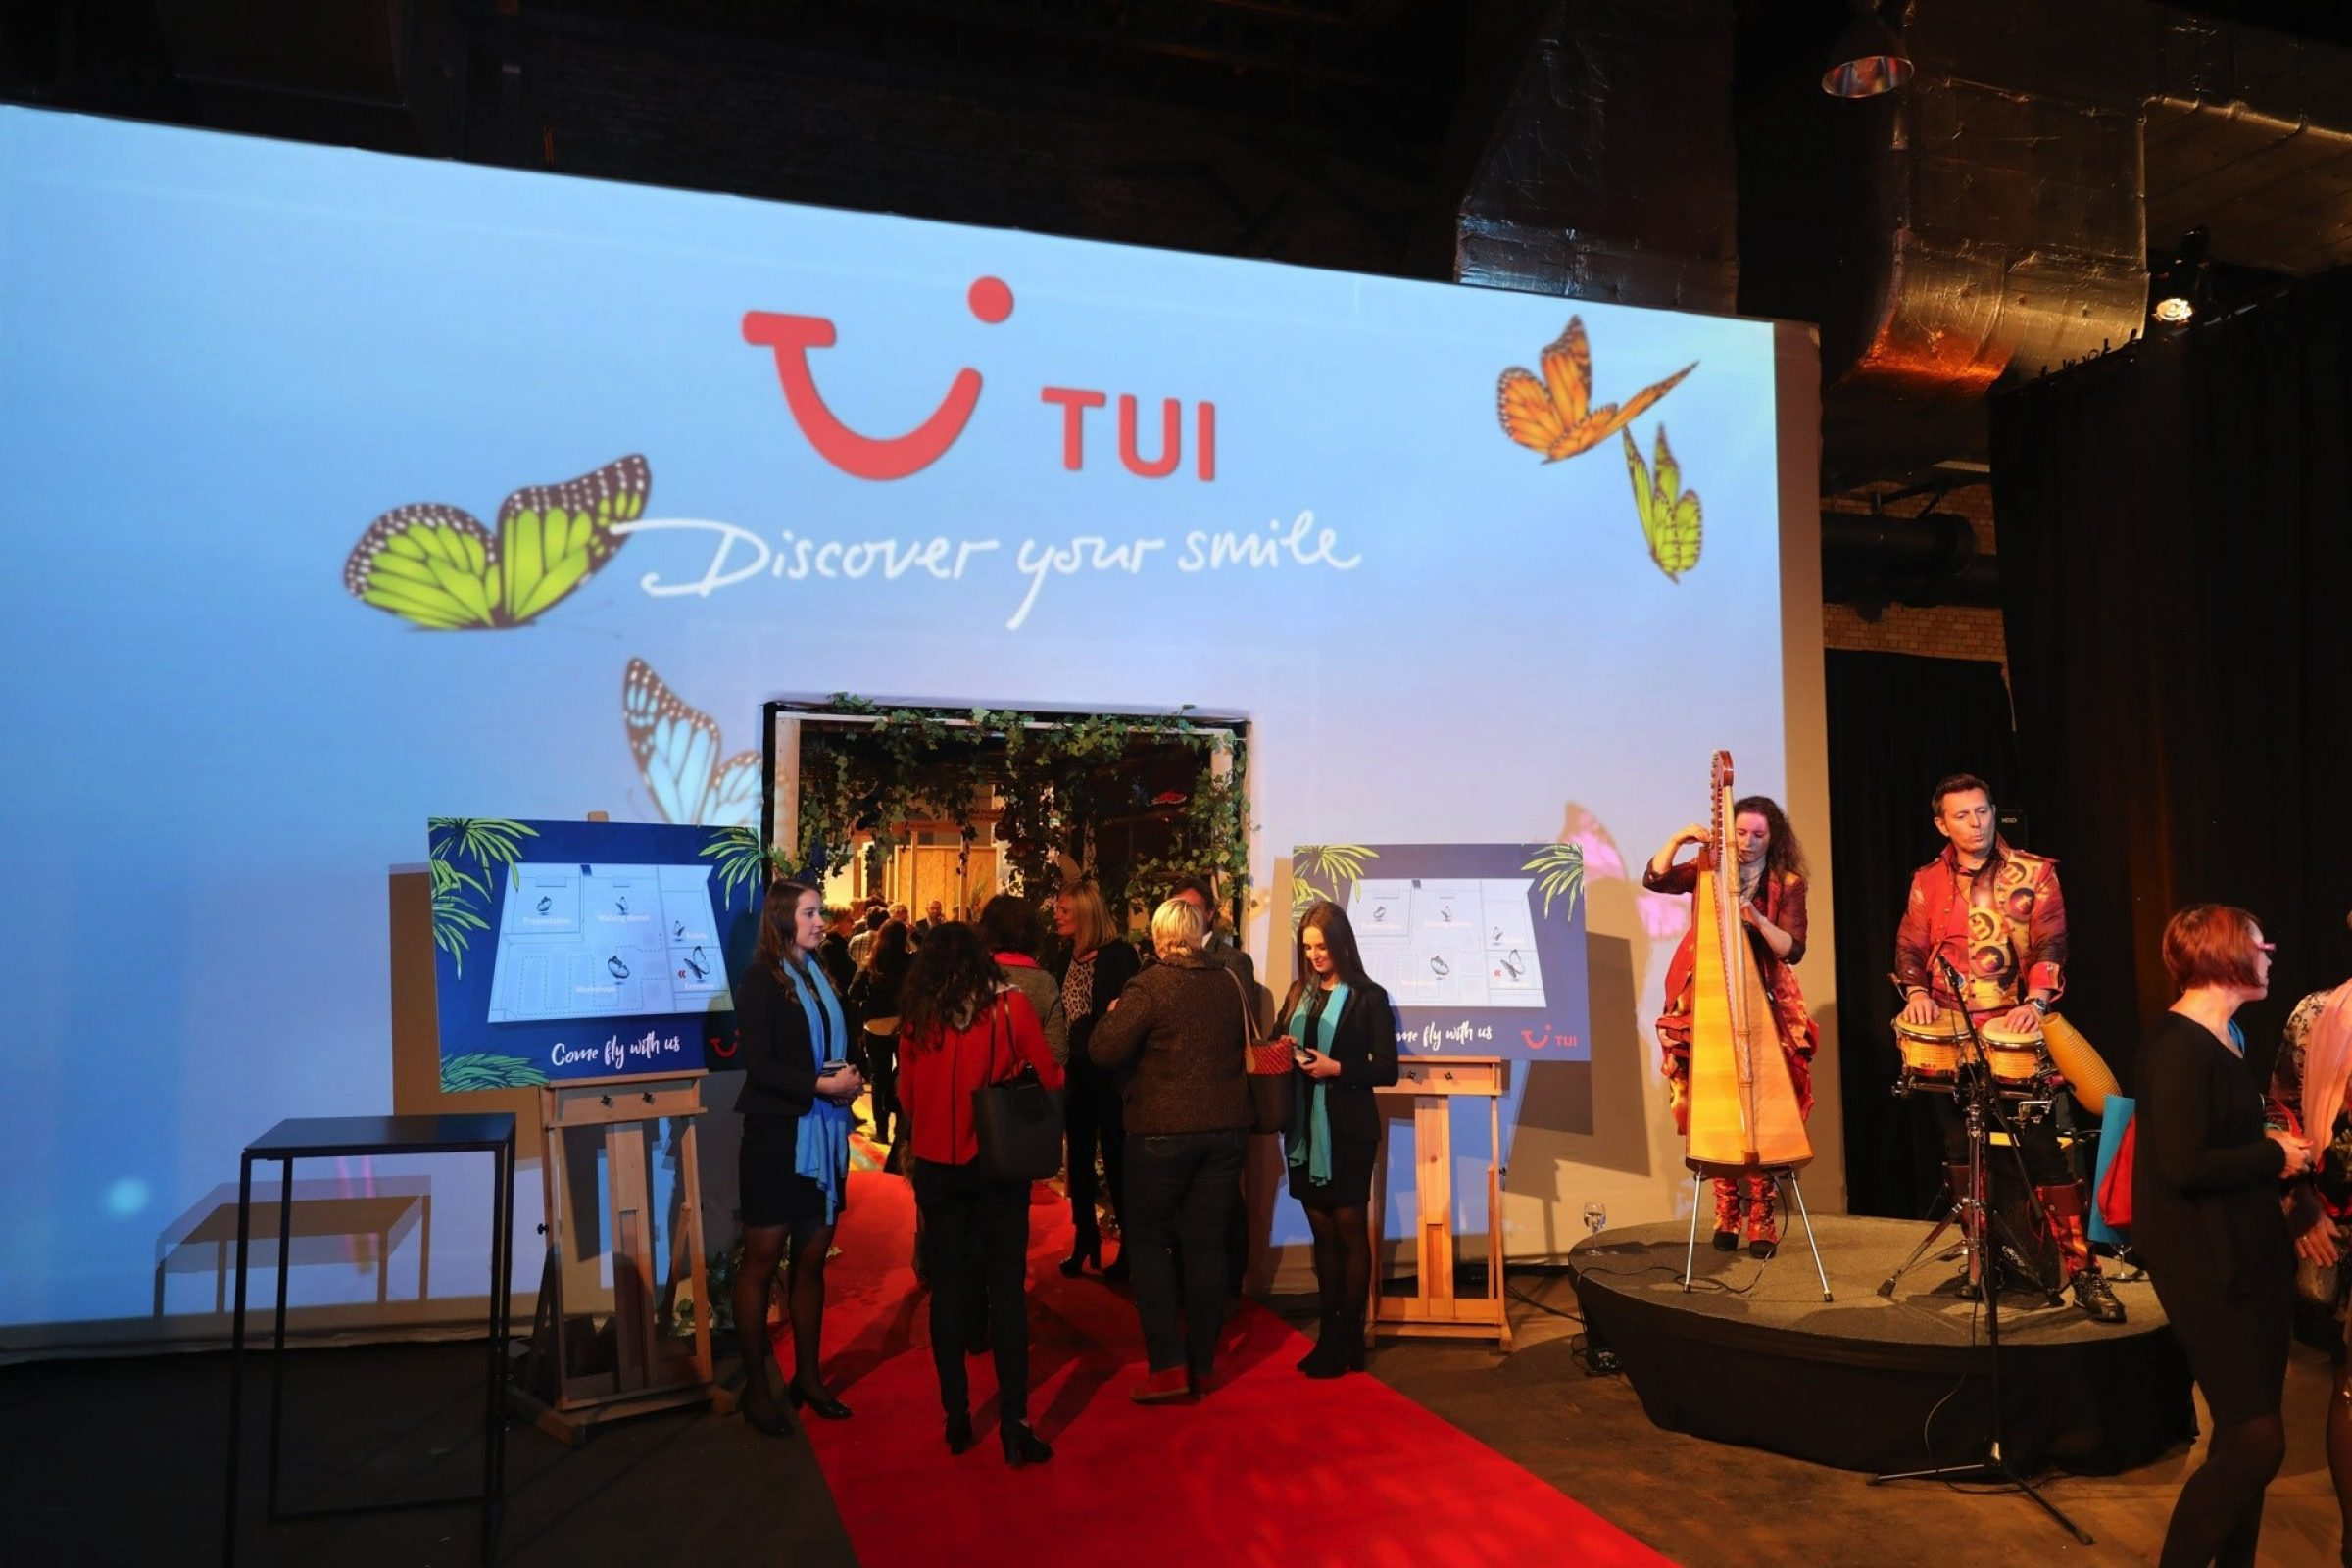 Fast Forward Evenementenbureau Gent Insights Netwerkevent Tui 1